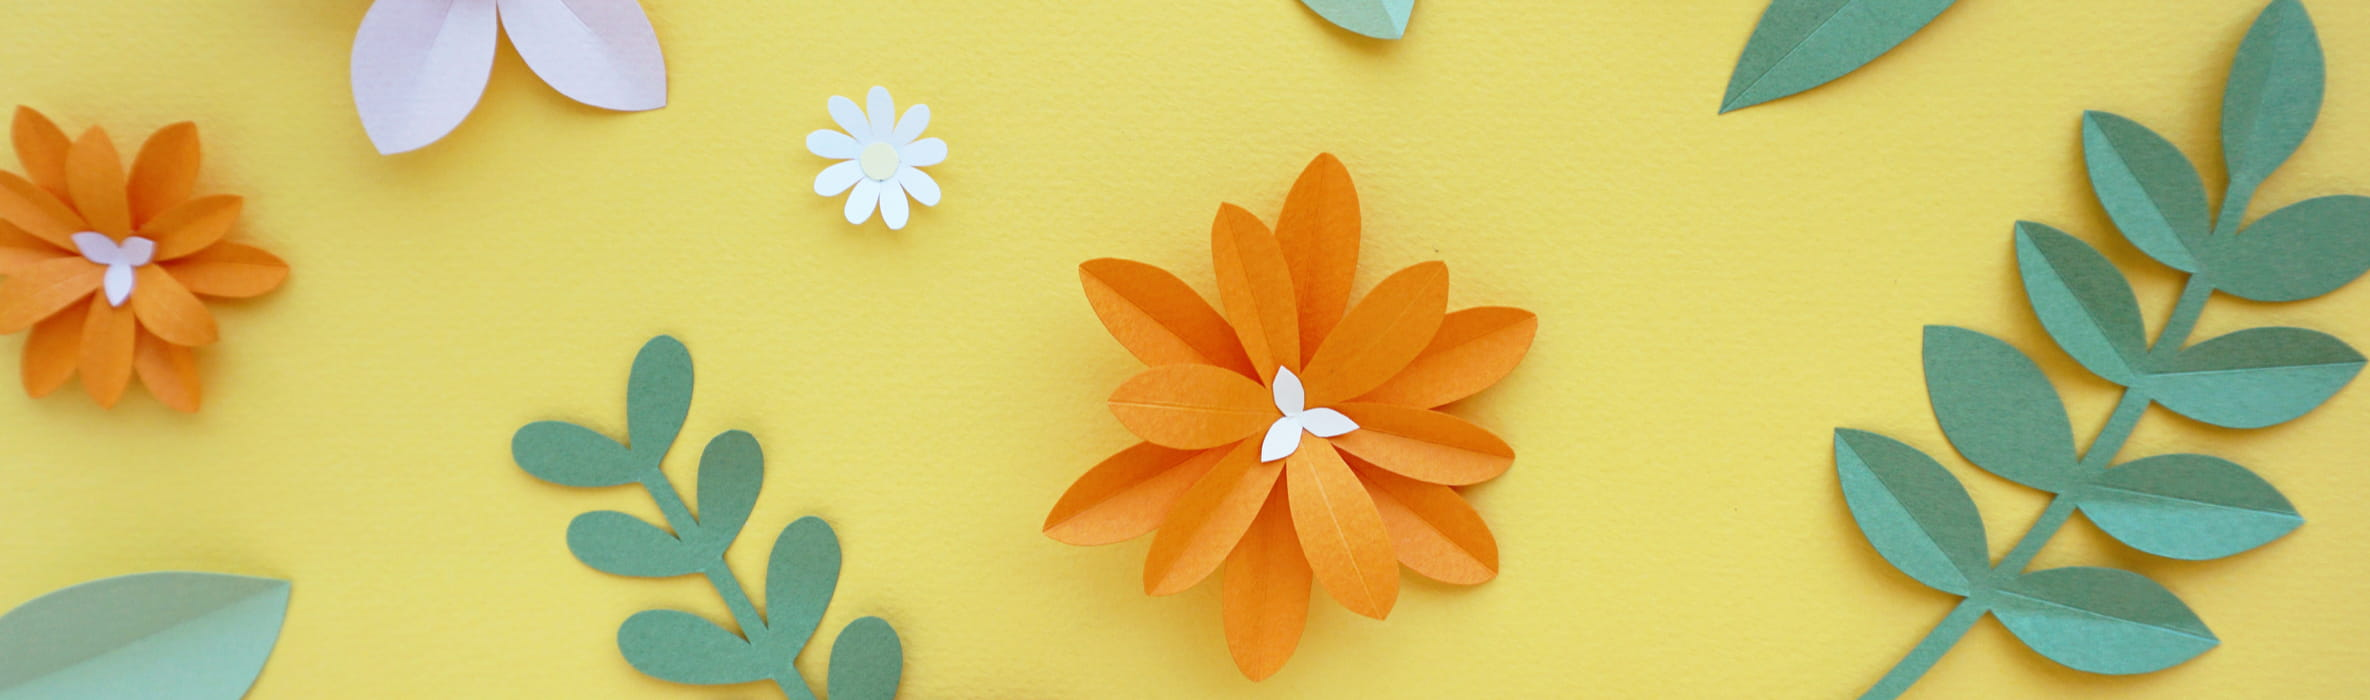 paper cut out plants on a yellow background